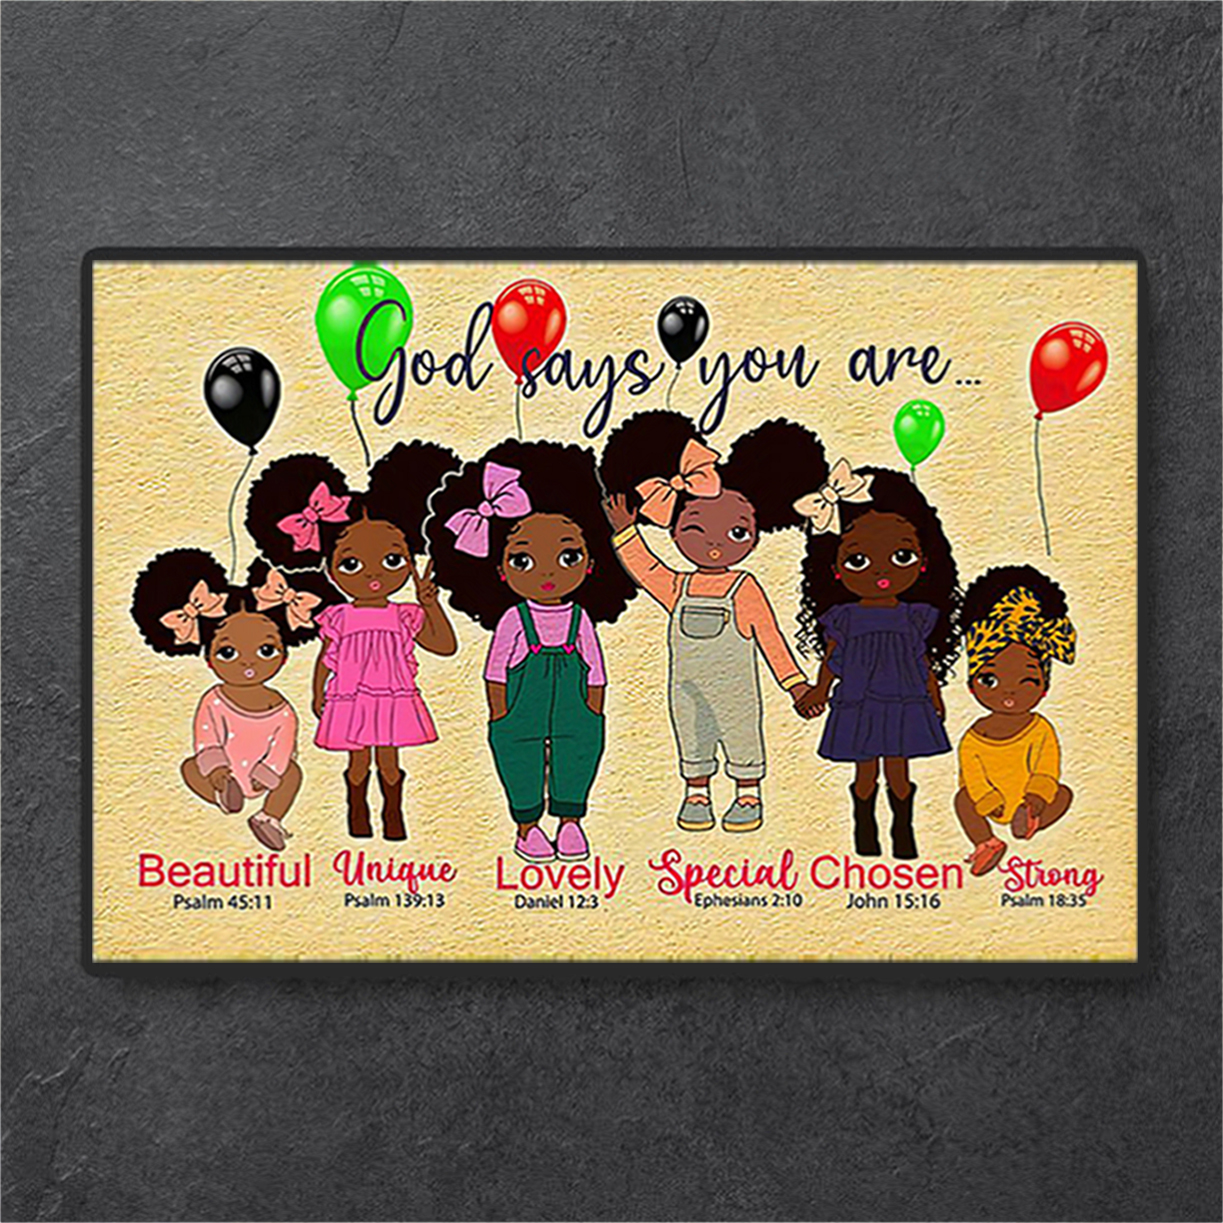 Black girl godchild says you are poster A3